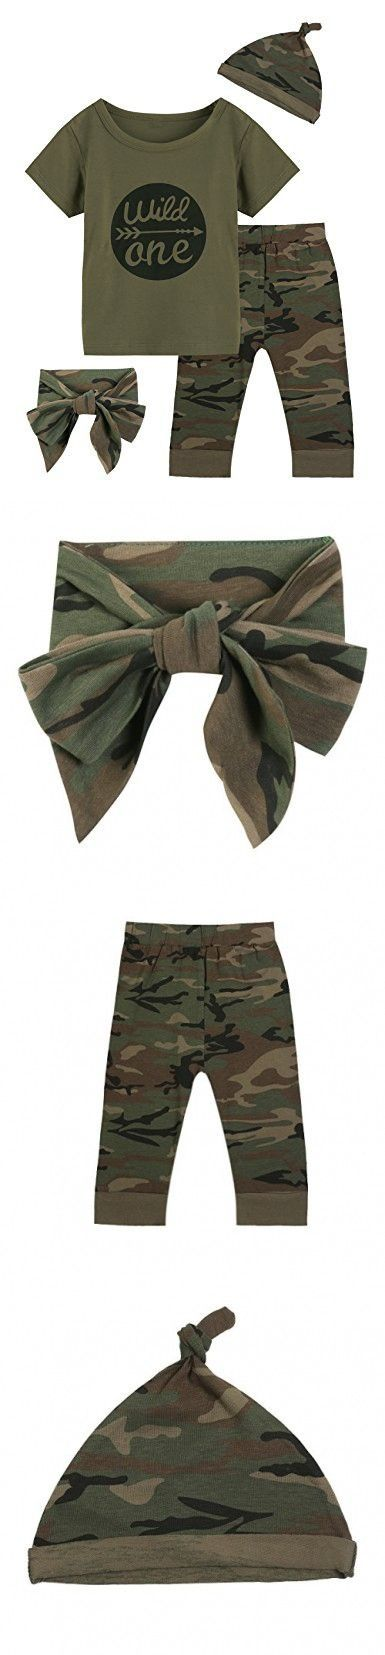 Baby Boys Girls Outfit Long Set 2PCS Camouflage Letter Print Shirt With Pants (Wild One Short Camouflage, 12-18 Months) #boyoutfits